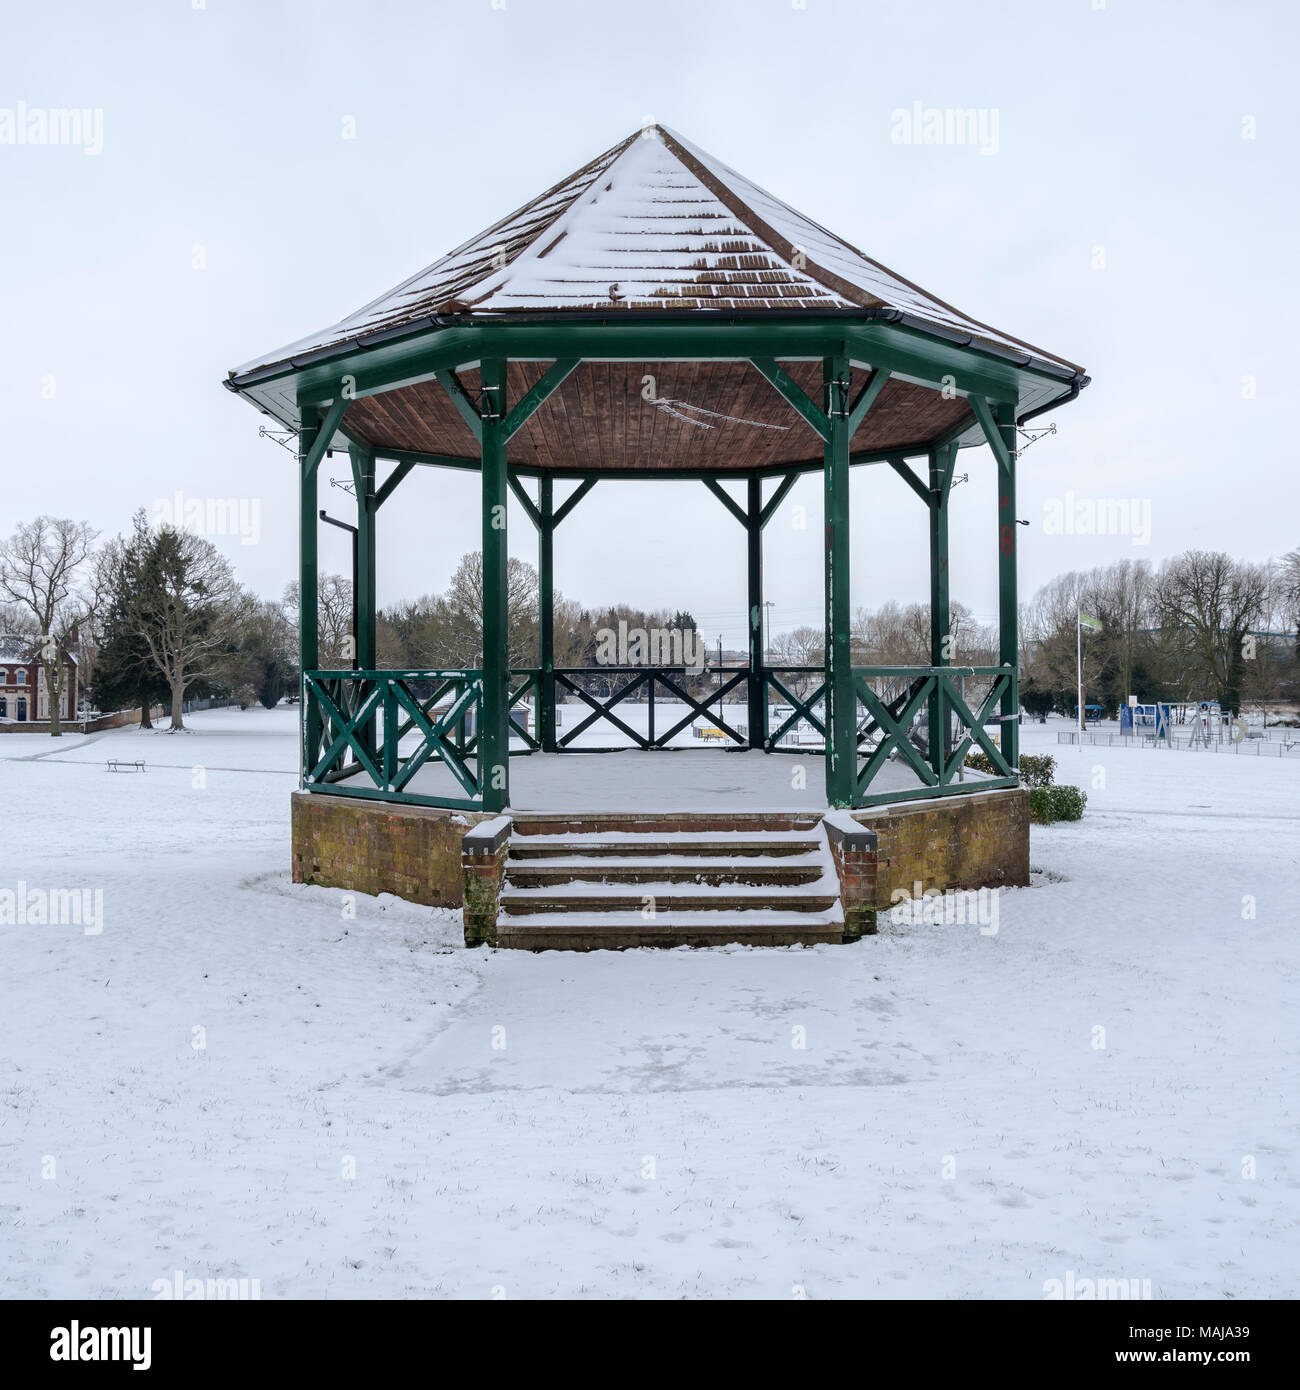 Bandstand in winter Stock Photo